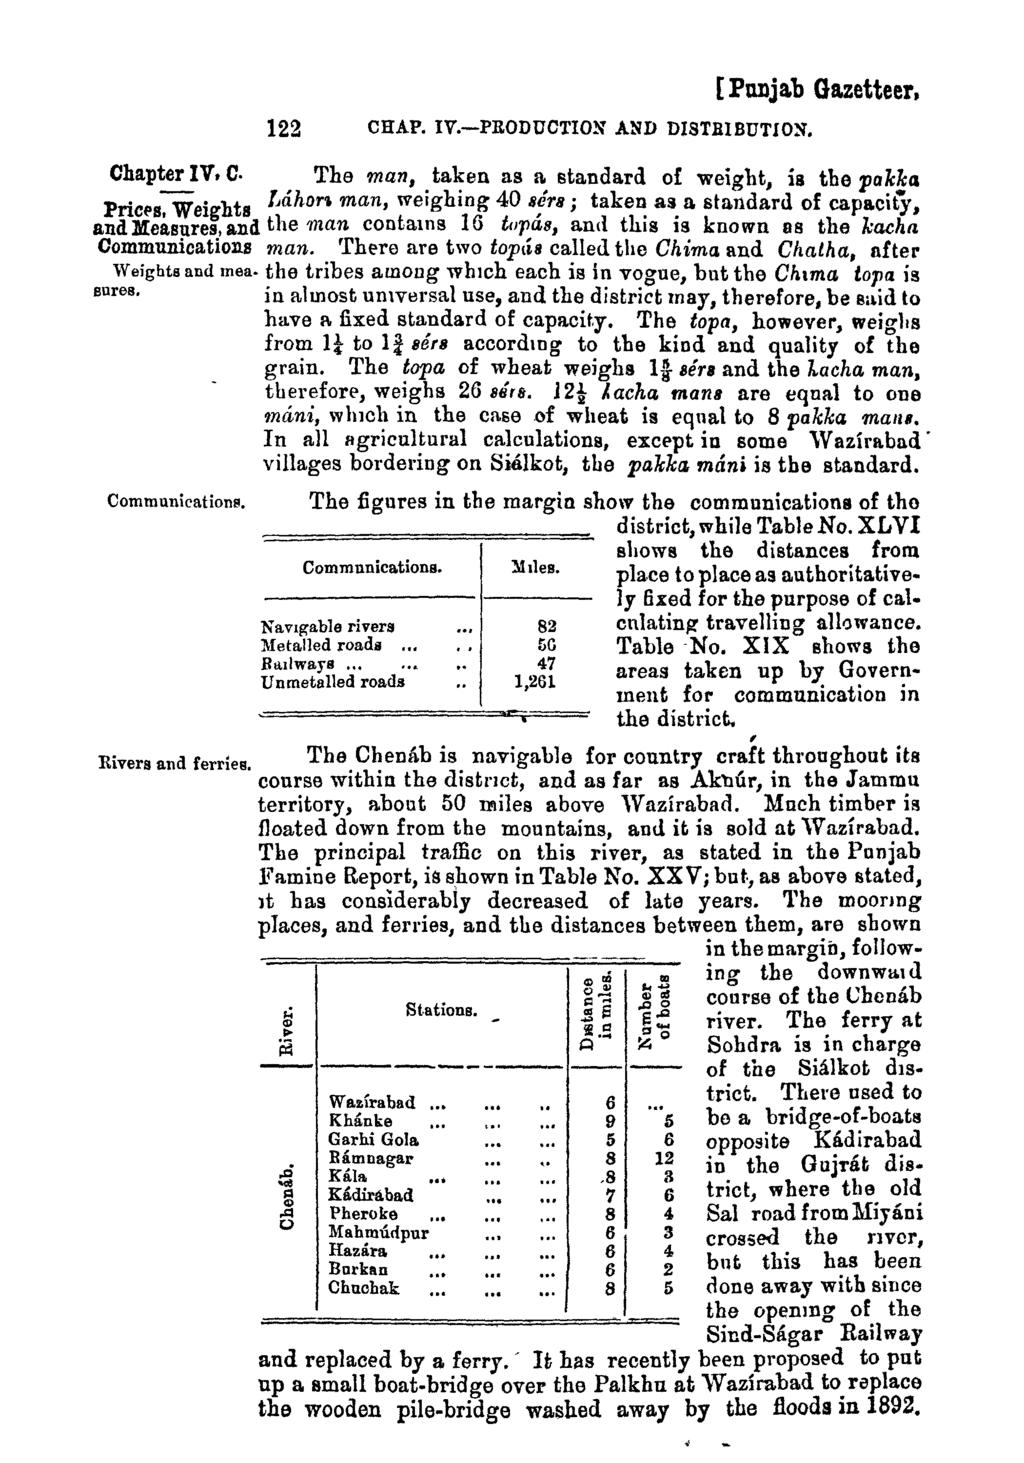 "122 CHAP. IV.-PRODUCTION AND DISTRIBUTION. [POllja.b Ga.zetteer, Chapter IV. C. The man, taken as a standard of weight, is the pakka PriCf'S Weights l,ahor"", man, weighing 40 ser8; taken as a standard of capacity."